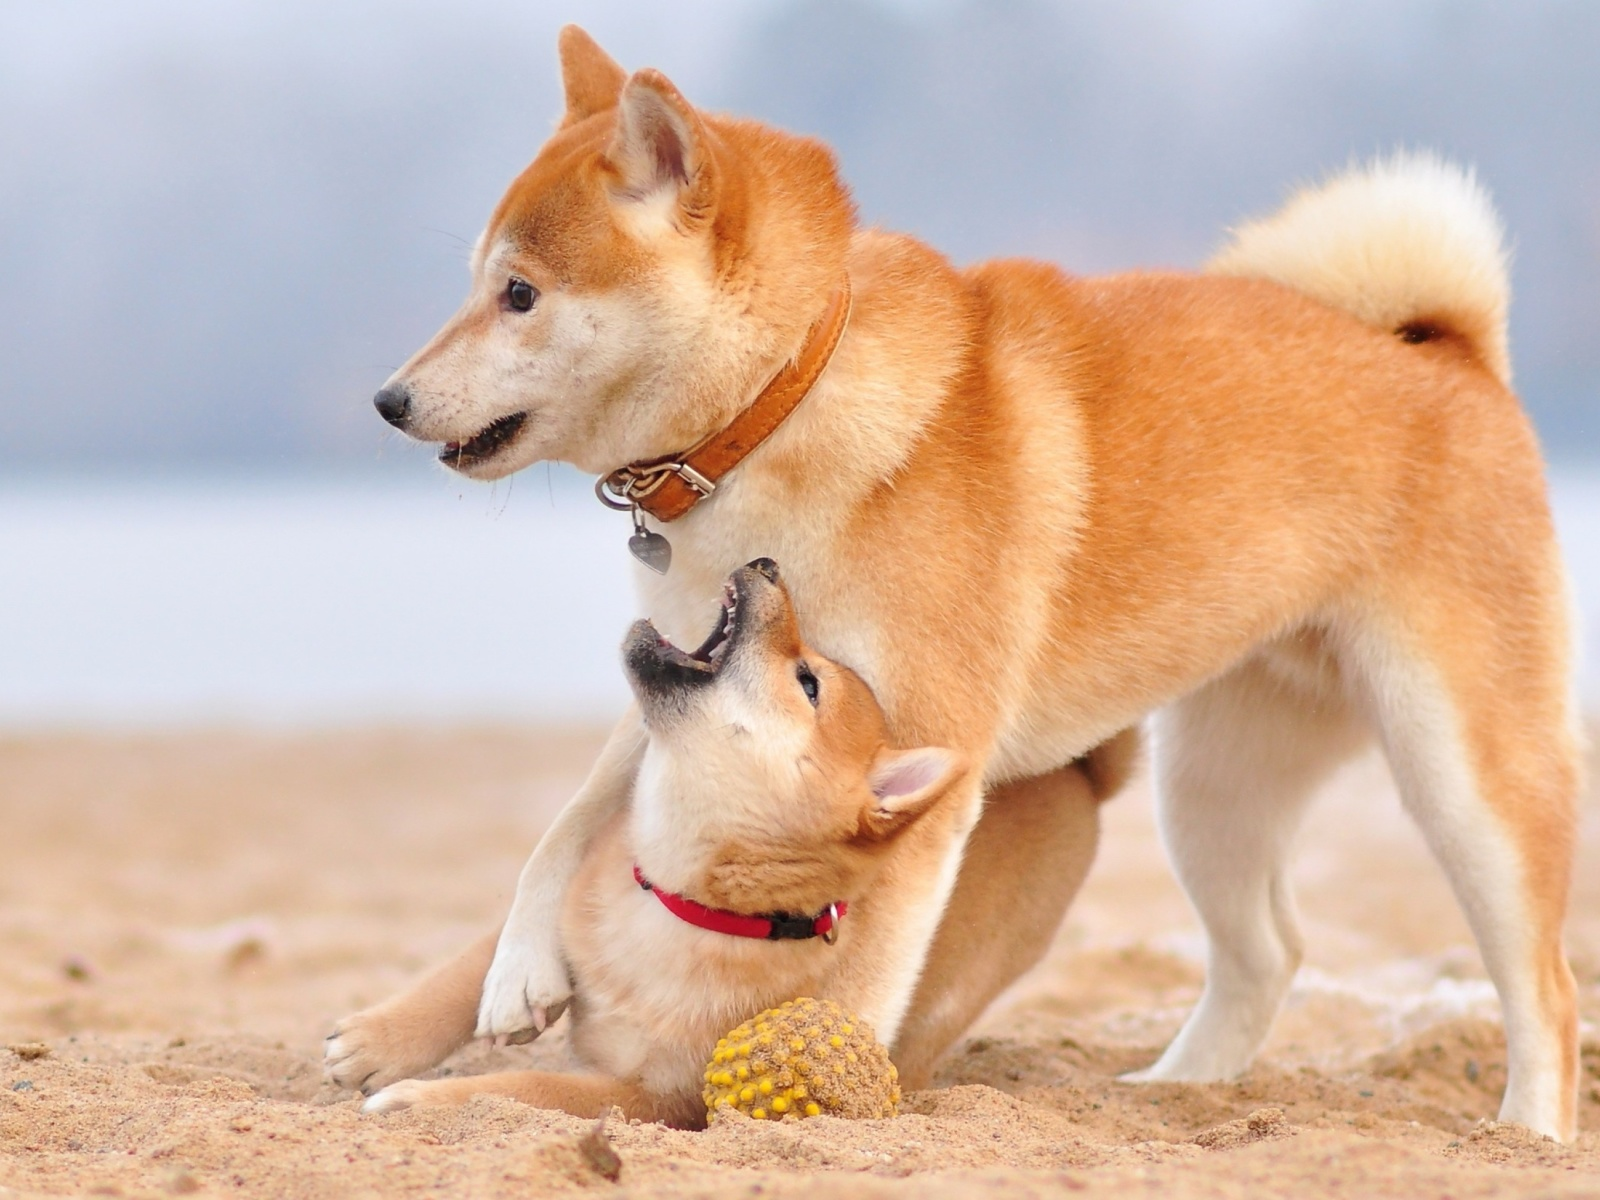 Akita Inu on Beach screenshot #1 1600x1200